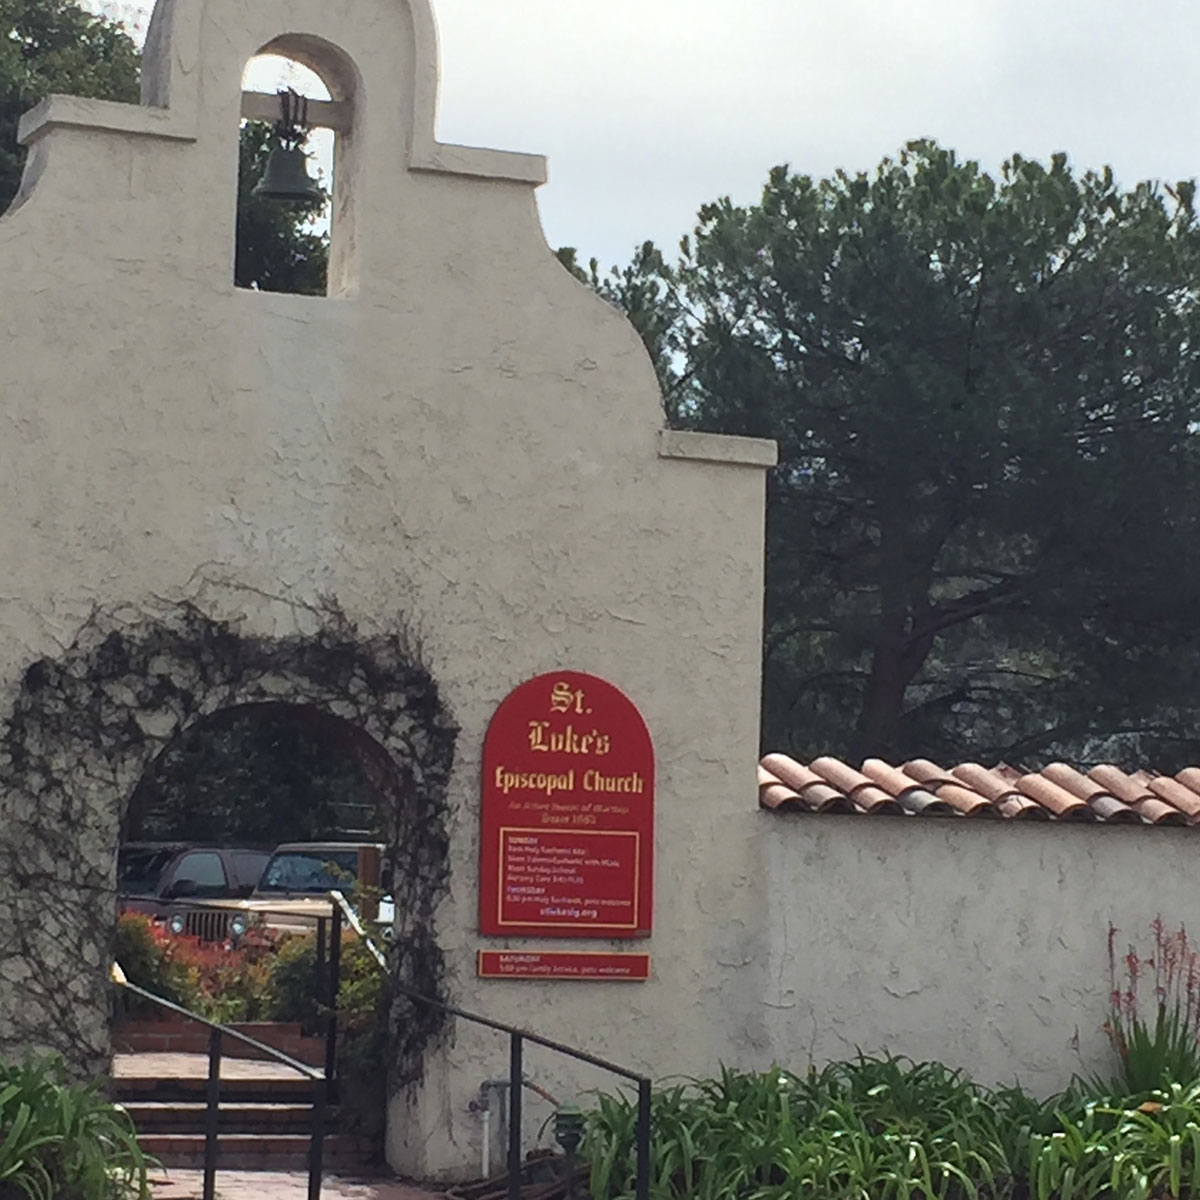 Things to do in Los Gatos/Churches